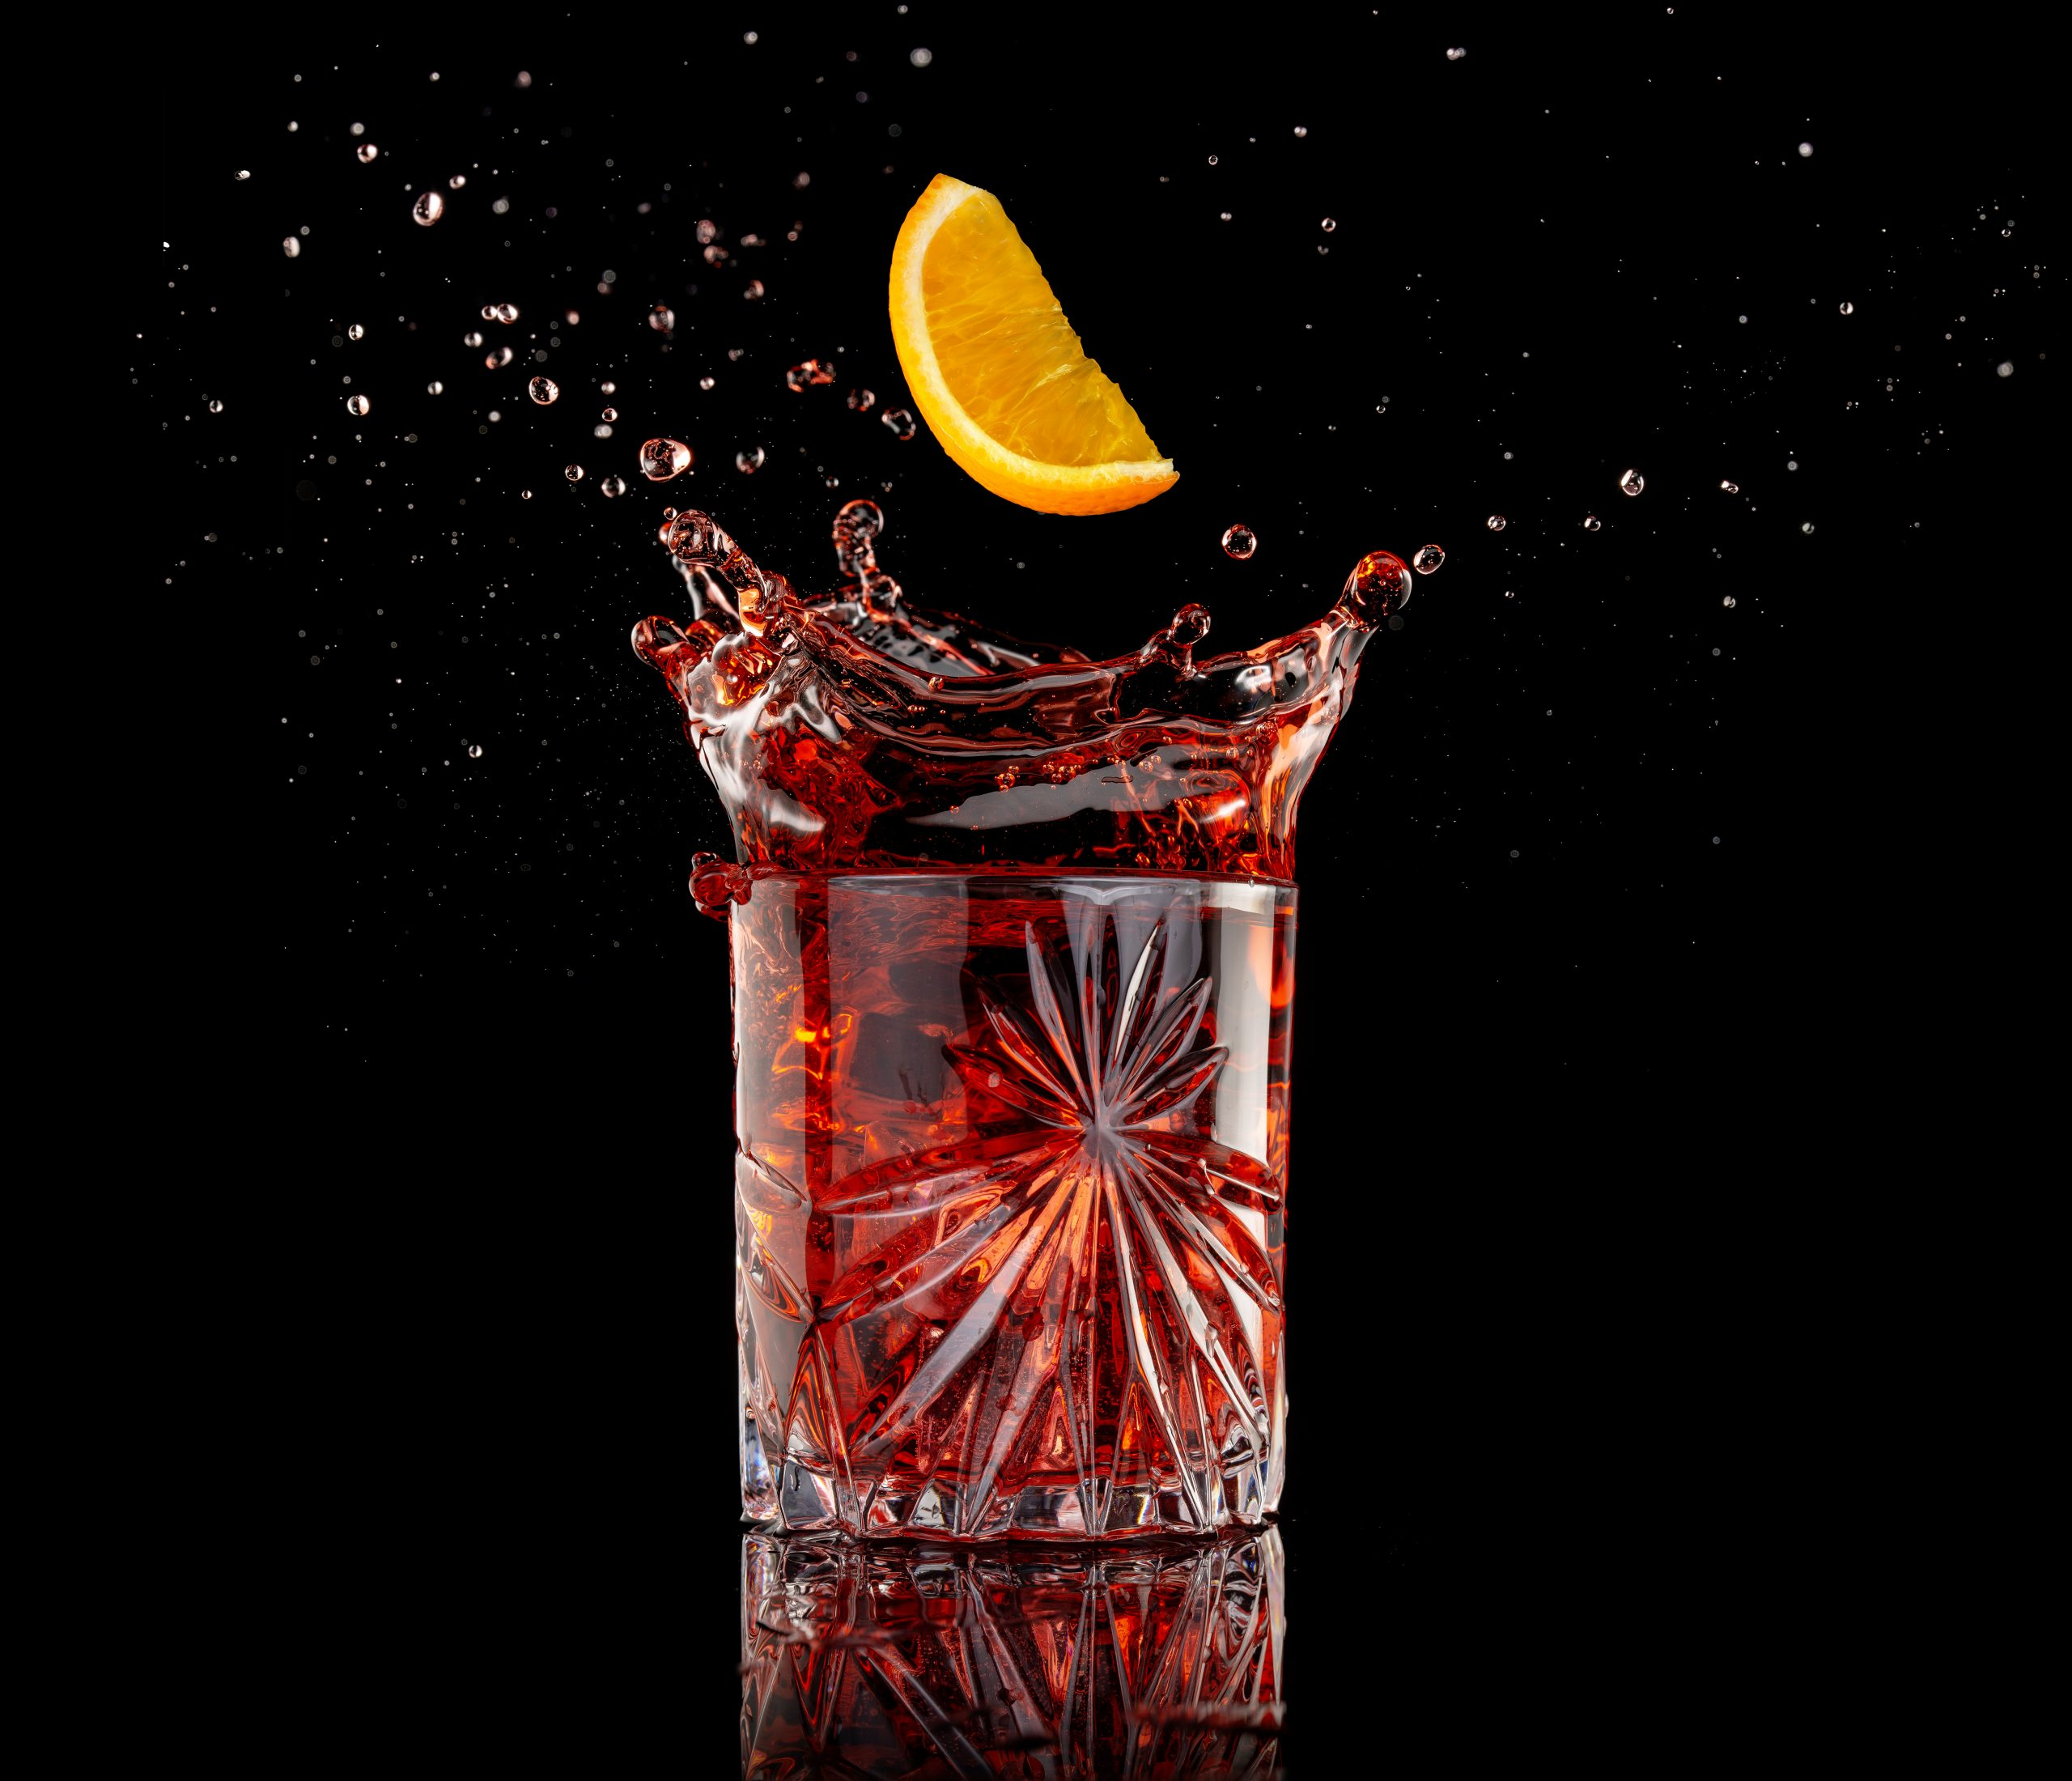 Campari comes out on top, reveals Diageo annual meeting